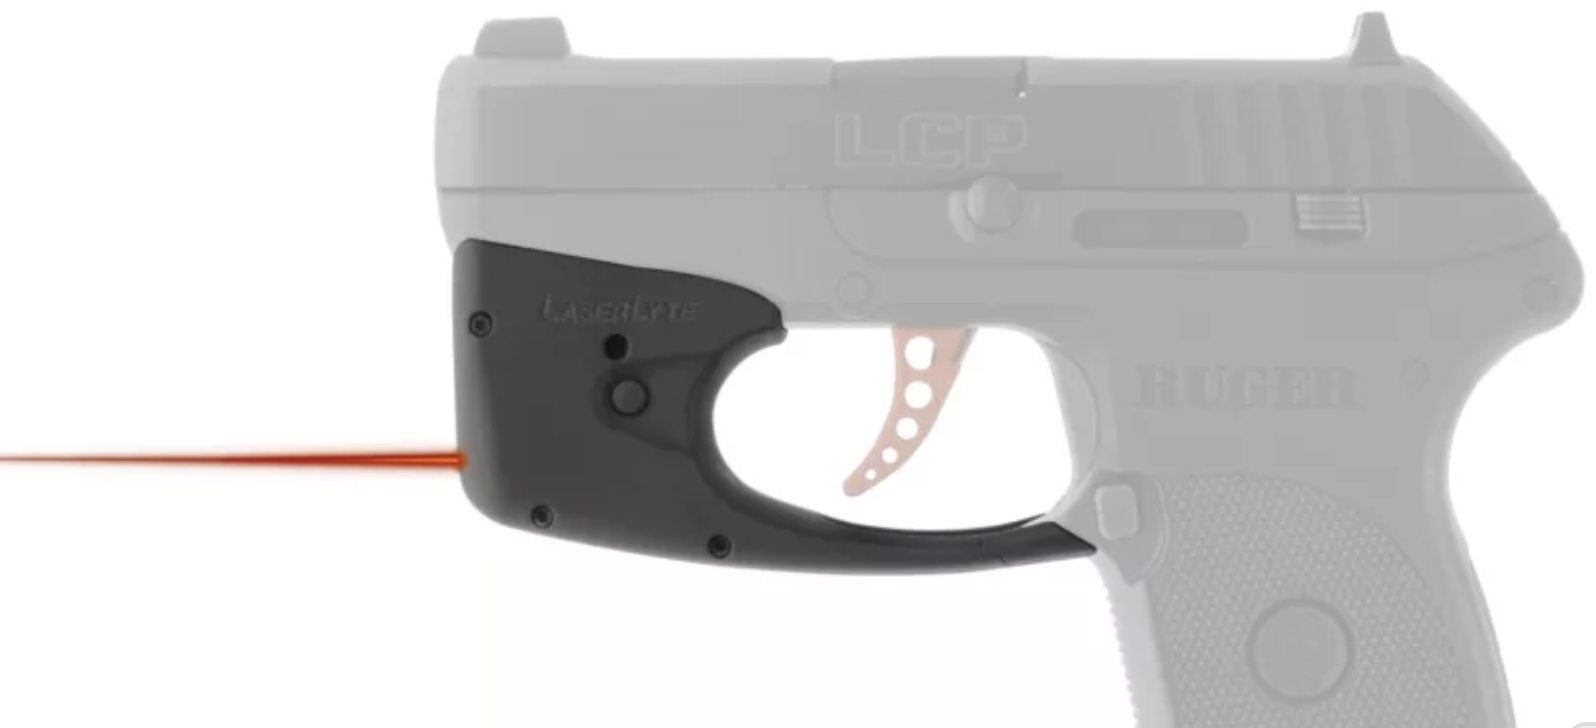 LaserLyte Acquired by American Outdoor Brands Corp